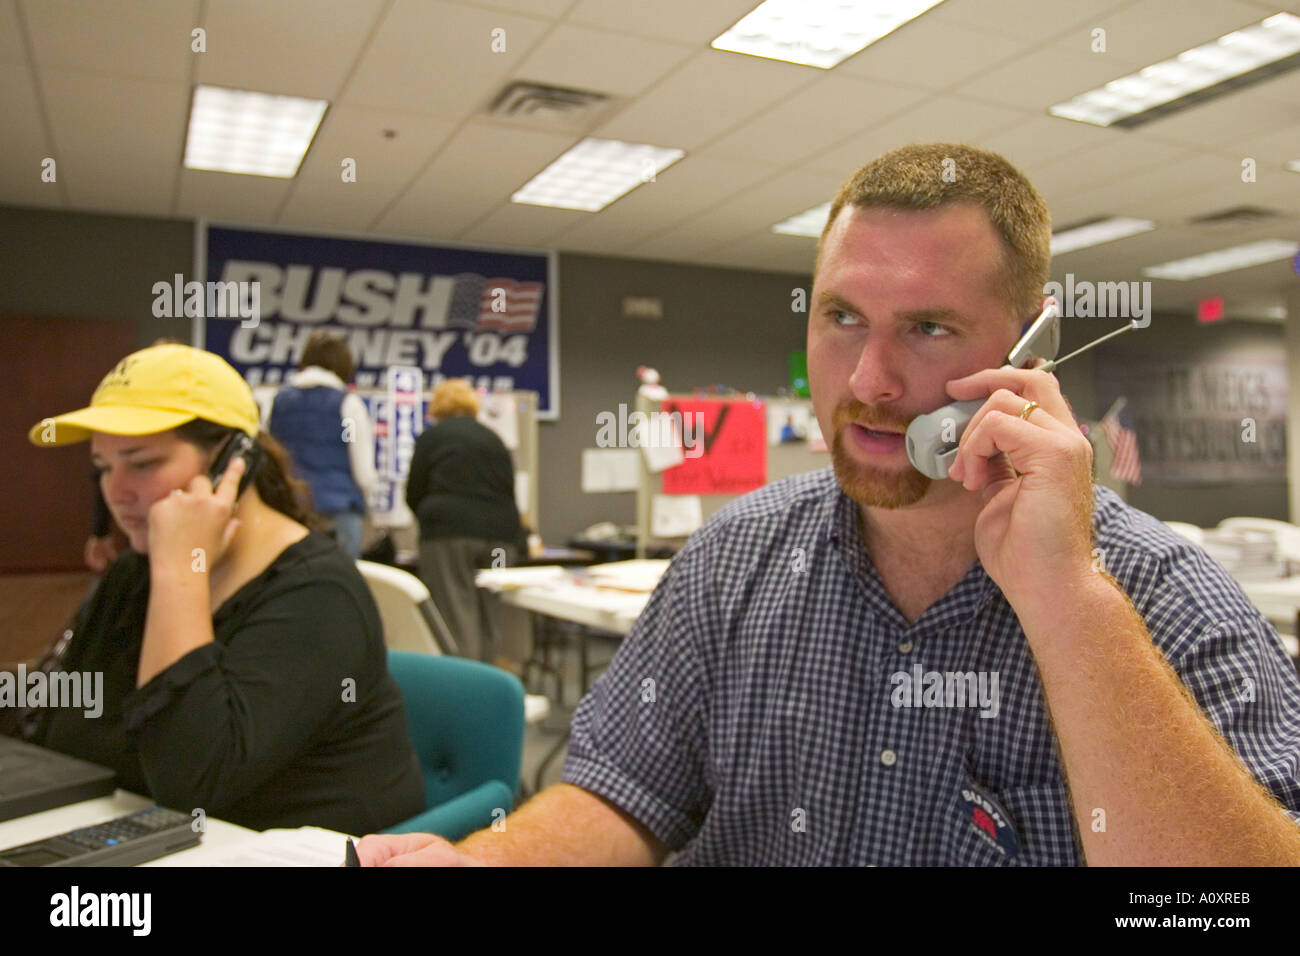 Volunteer Makes Phone Calls in Political Campaign - Stock Image